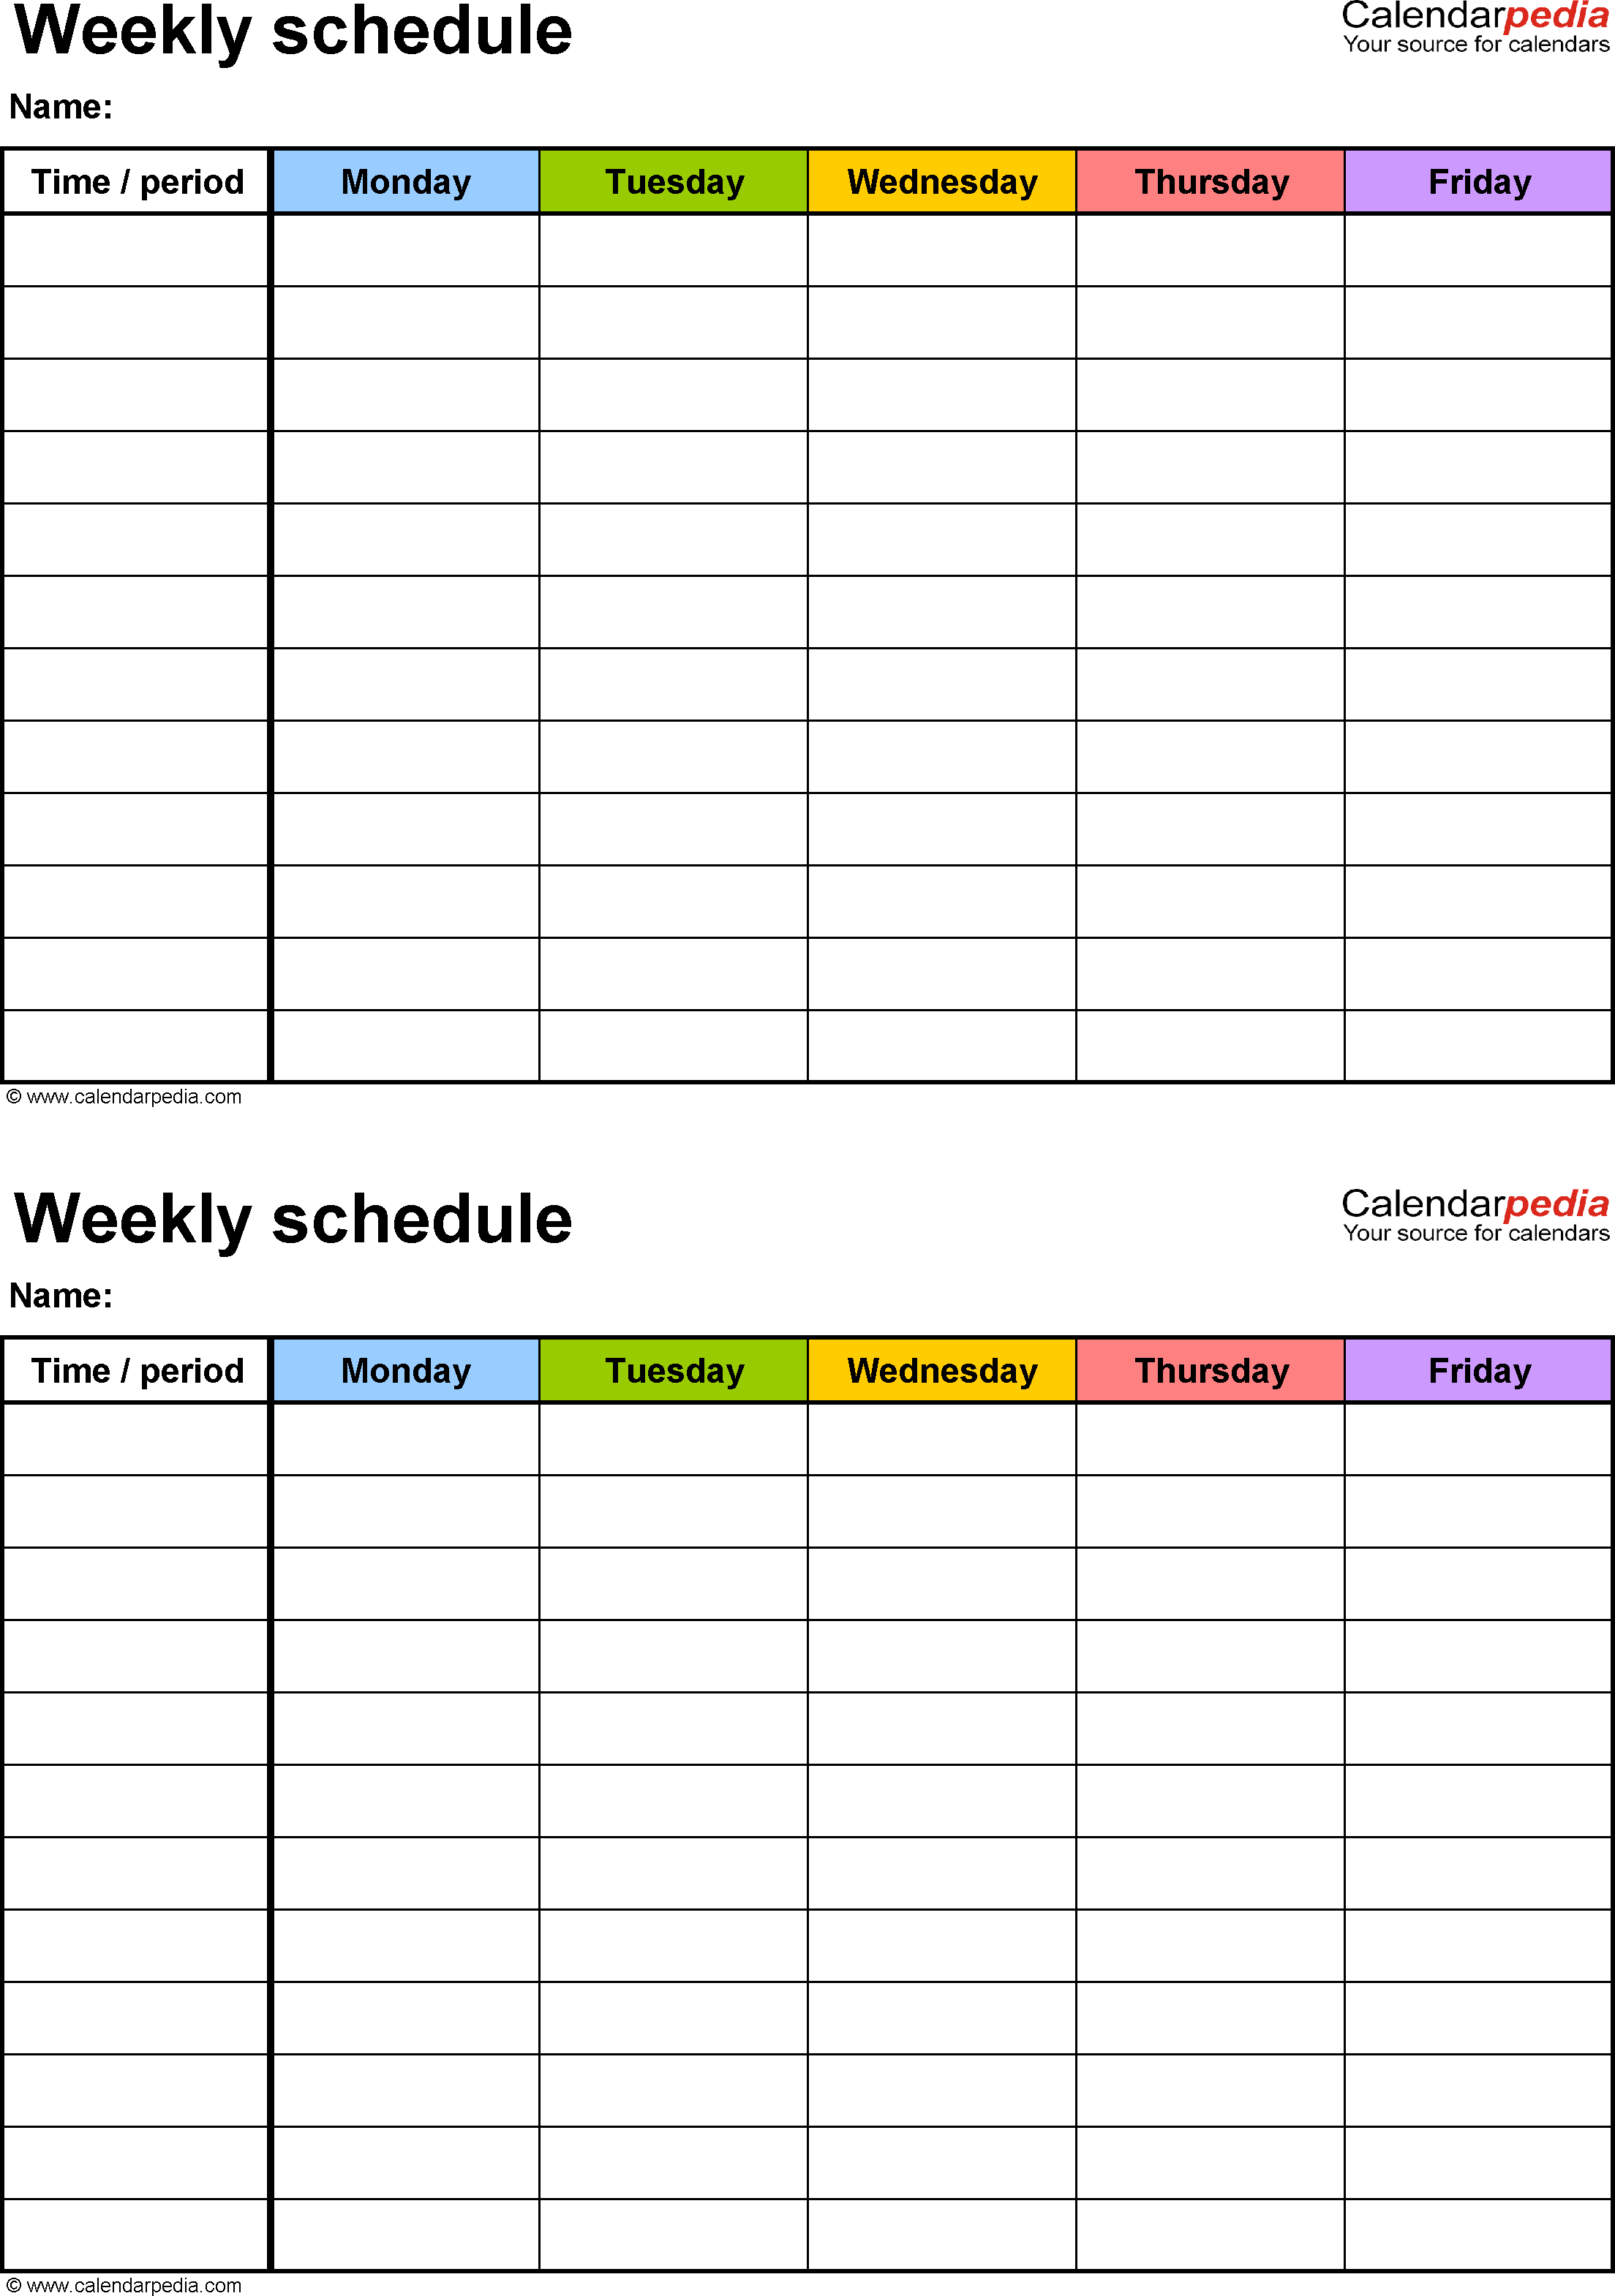 Free Weekly Schedule Templates For Word - 18 Templates inside Free Calendar Agenda Template